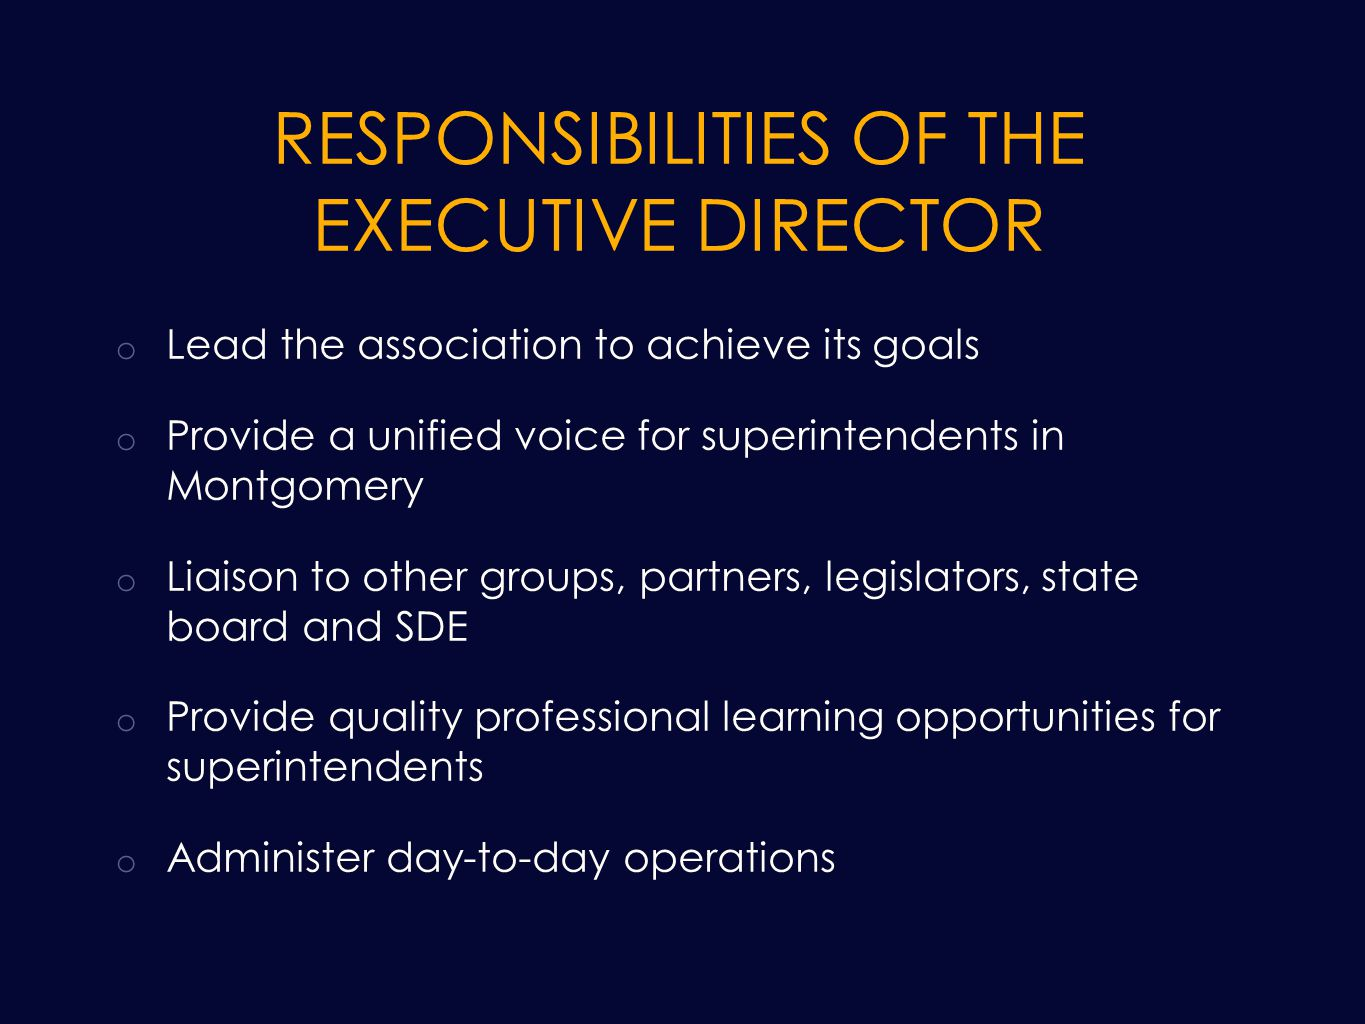 RESPONSIBILITIES OF THE EXECUTIVE DIRECTOR o Lead the association to achieve its goals o Provide a unified voice for superintendents in Montgomery o Liaison to other groups, partners, legislators, state board and SDE o Provide quality professional learning opportunities for superintendents o Administer day-to-day operations